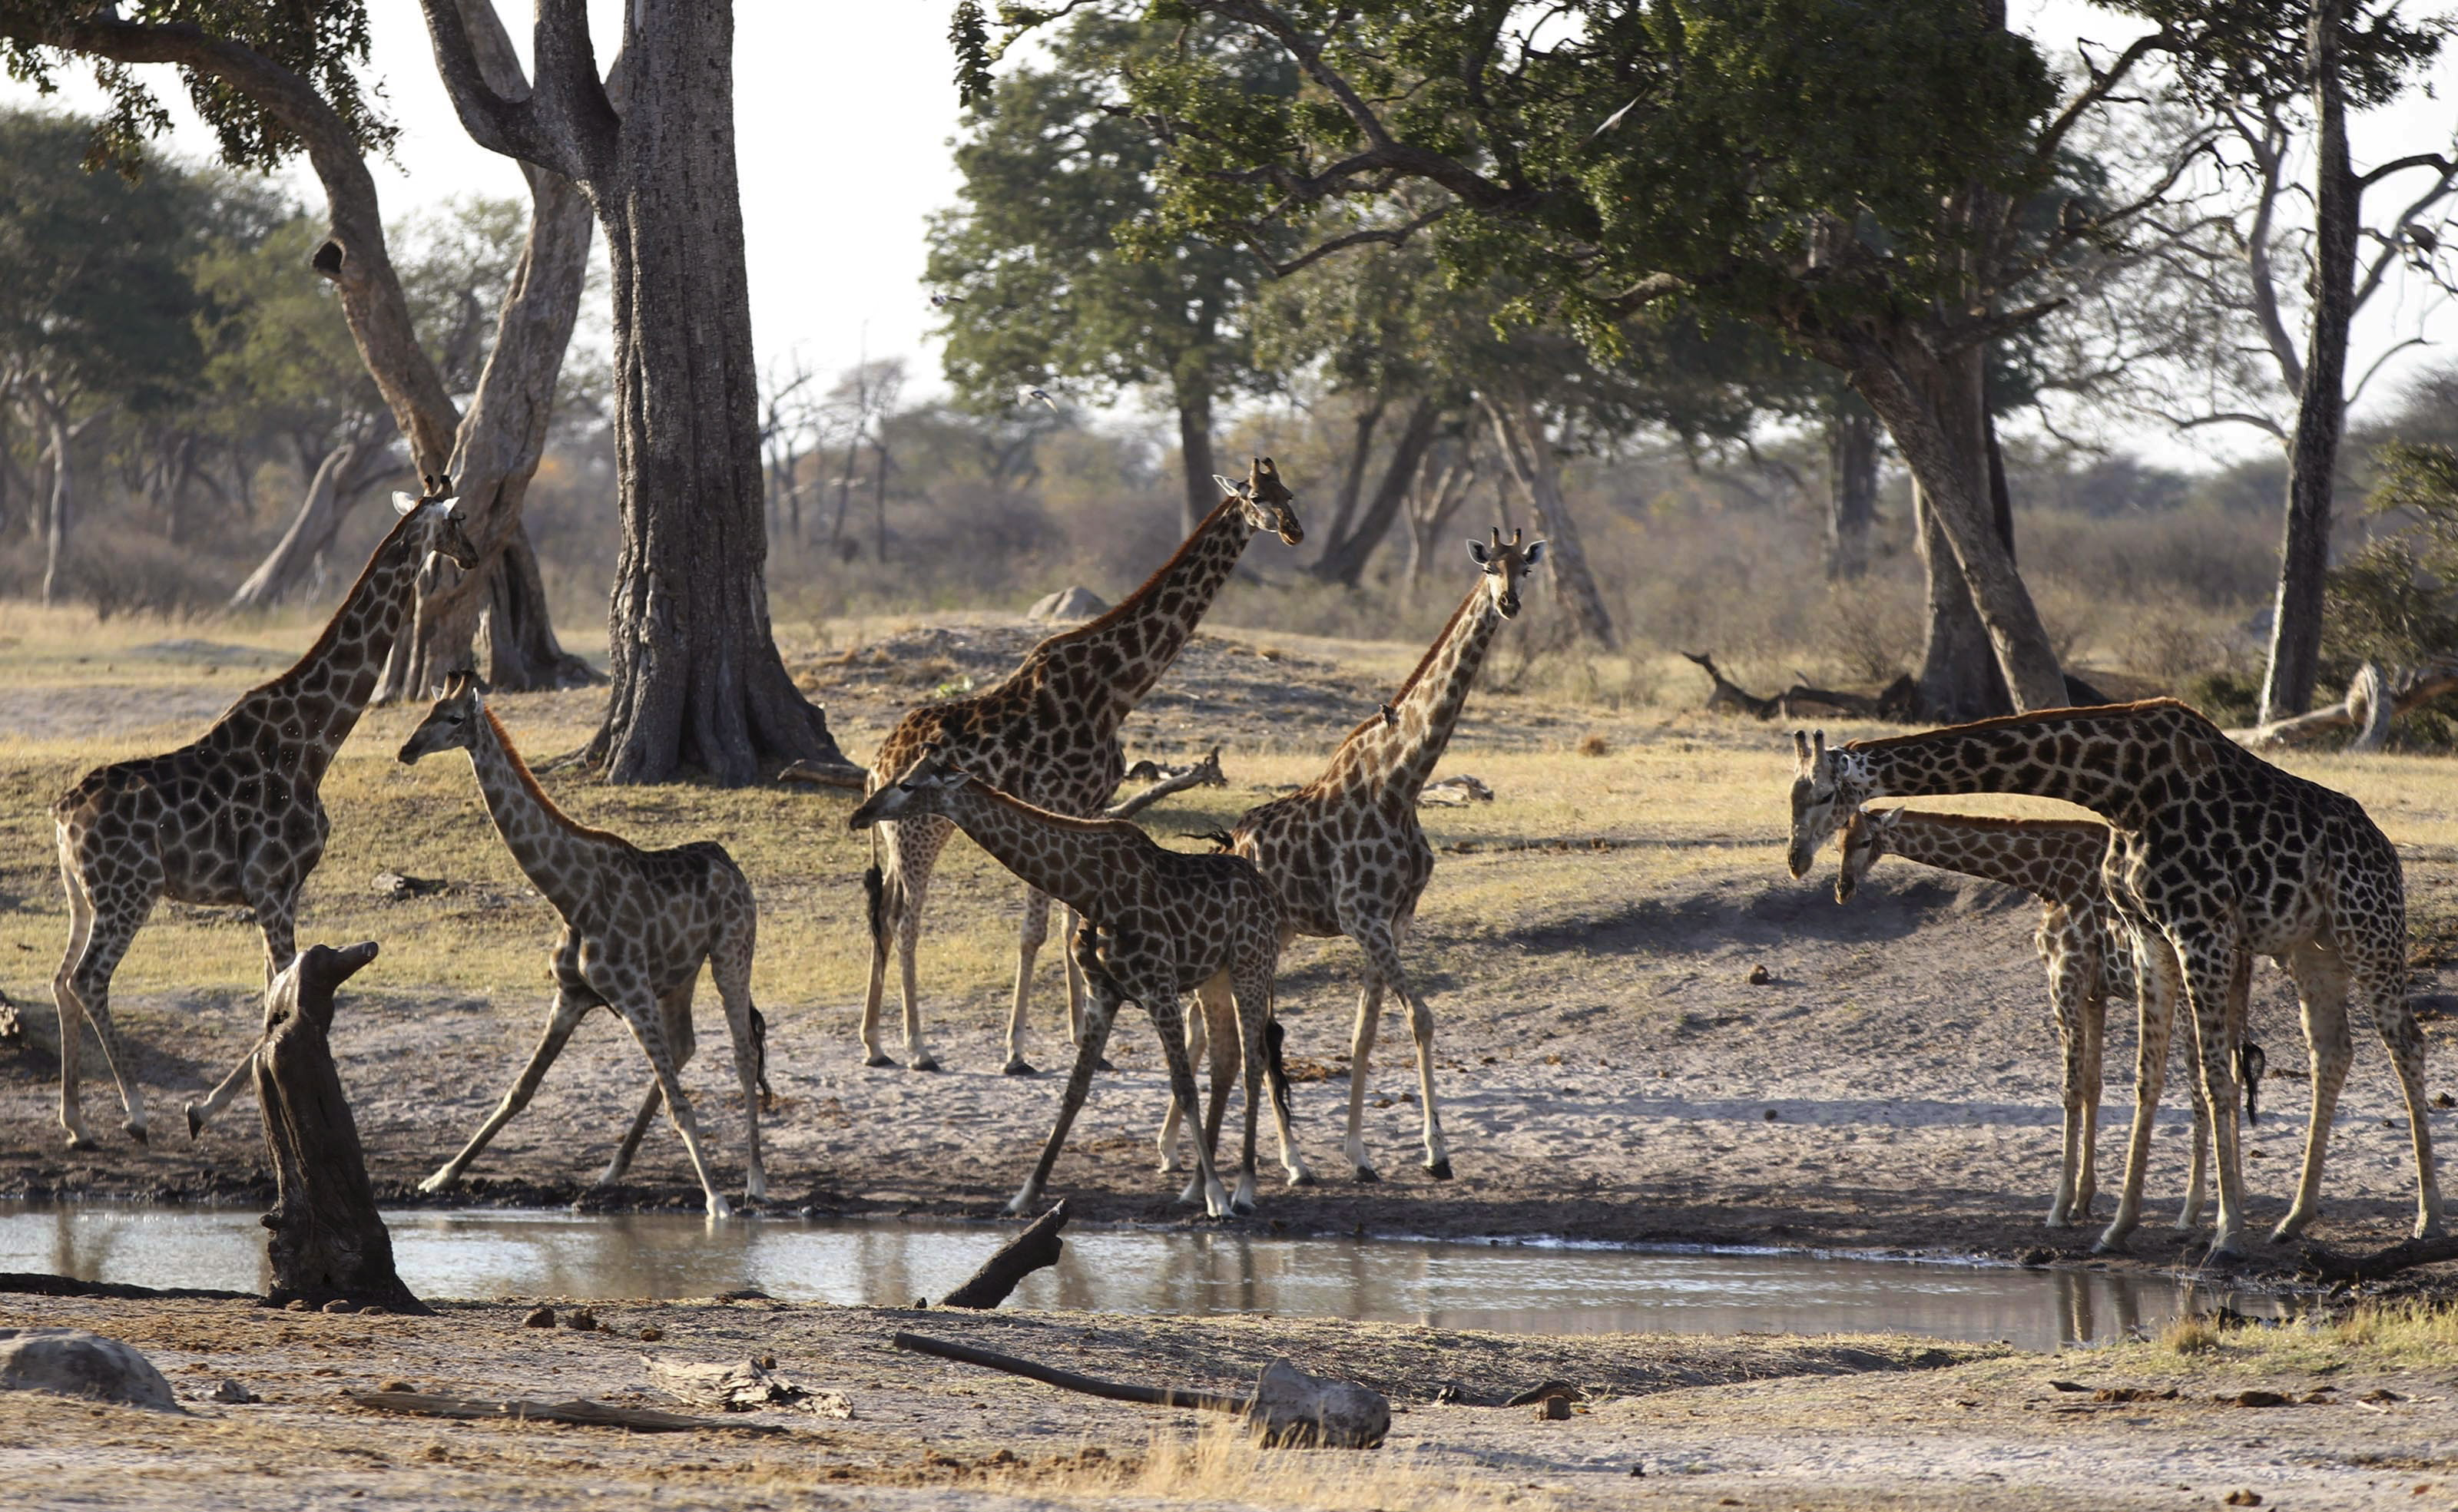 Giraffe gather at a water hole in Zimbabwe's Hwange National Park, August 2, 2015. After the killing of Zimbabwe's best known lion, a second animal has been poached by a foreigner, a source said on Saturday as authorities banned big game hunting outside the park from which Cecil was lured to his death.